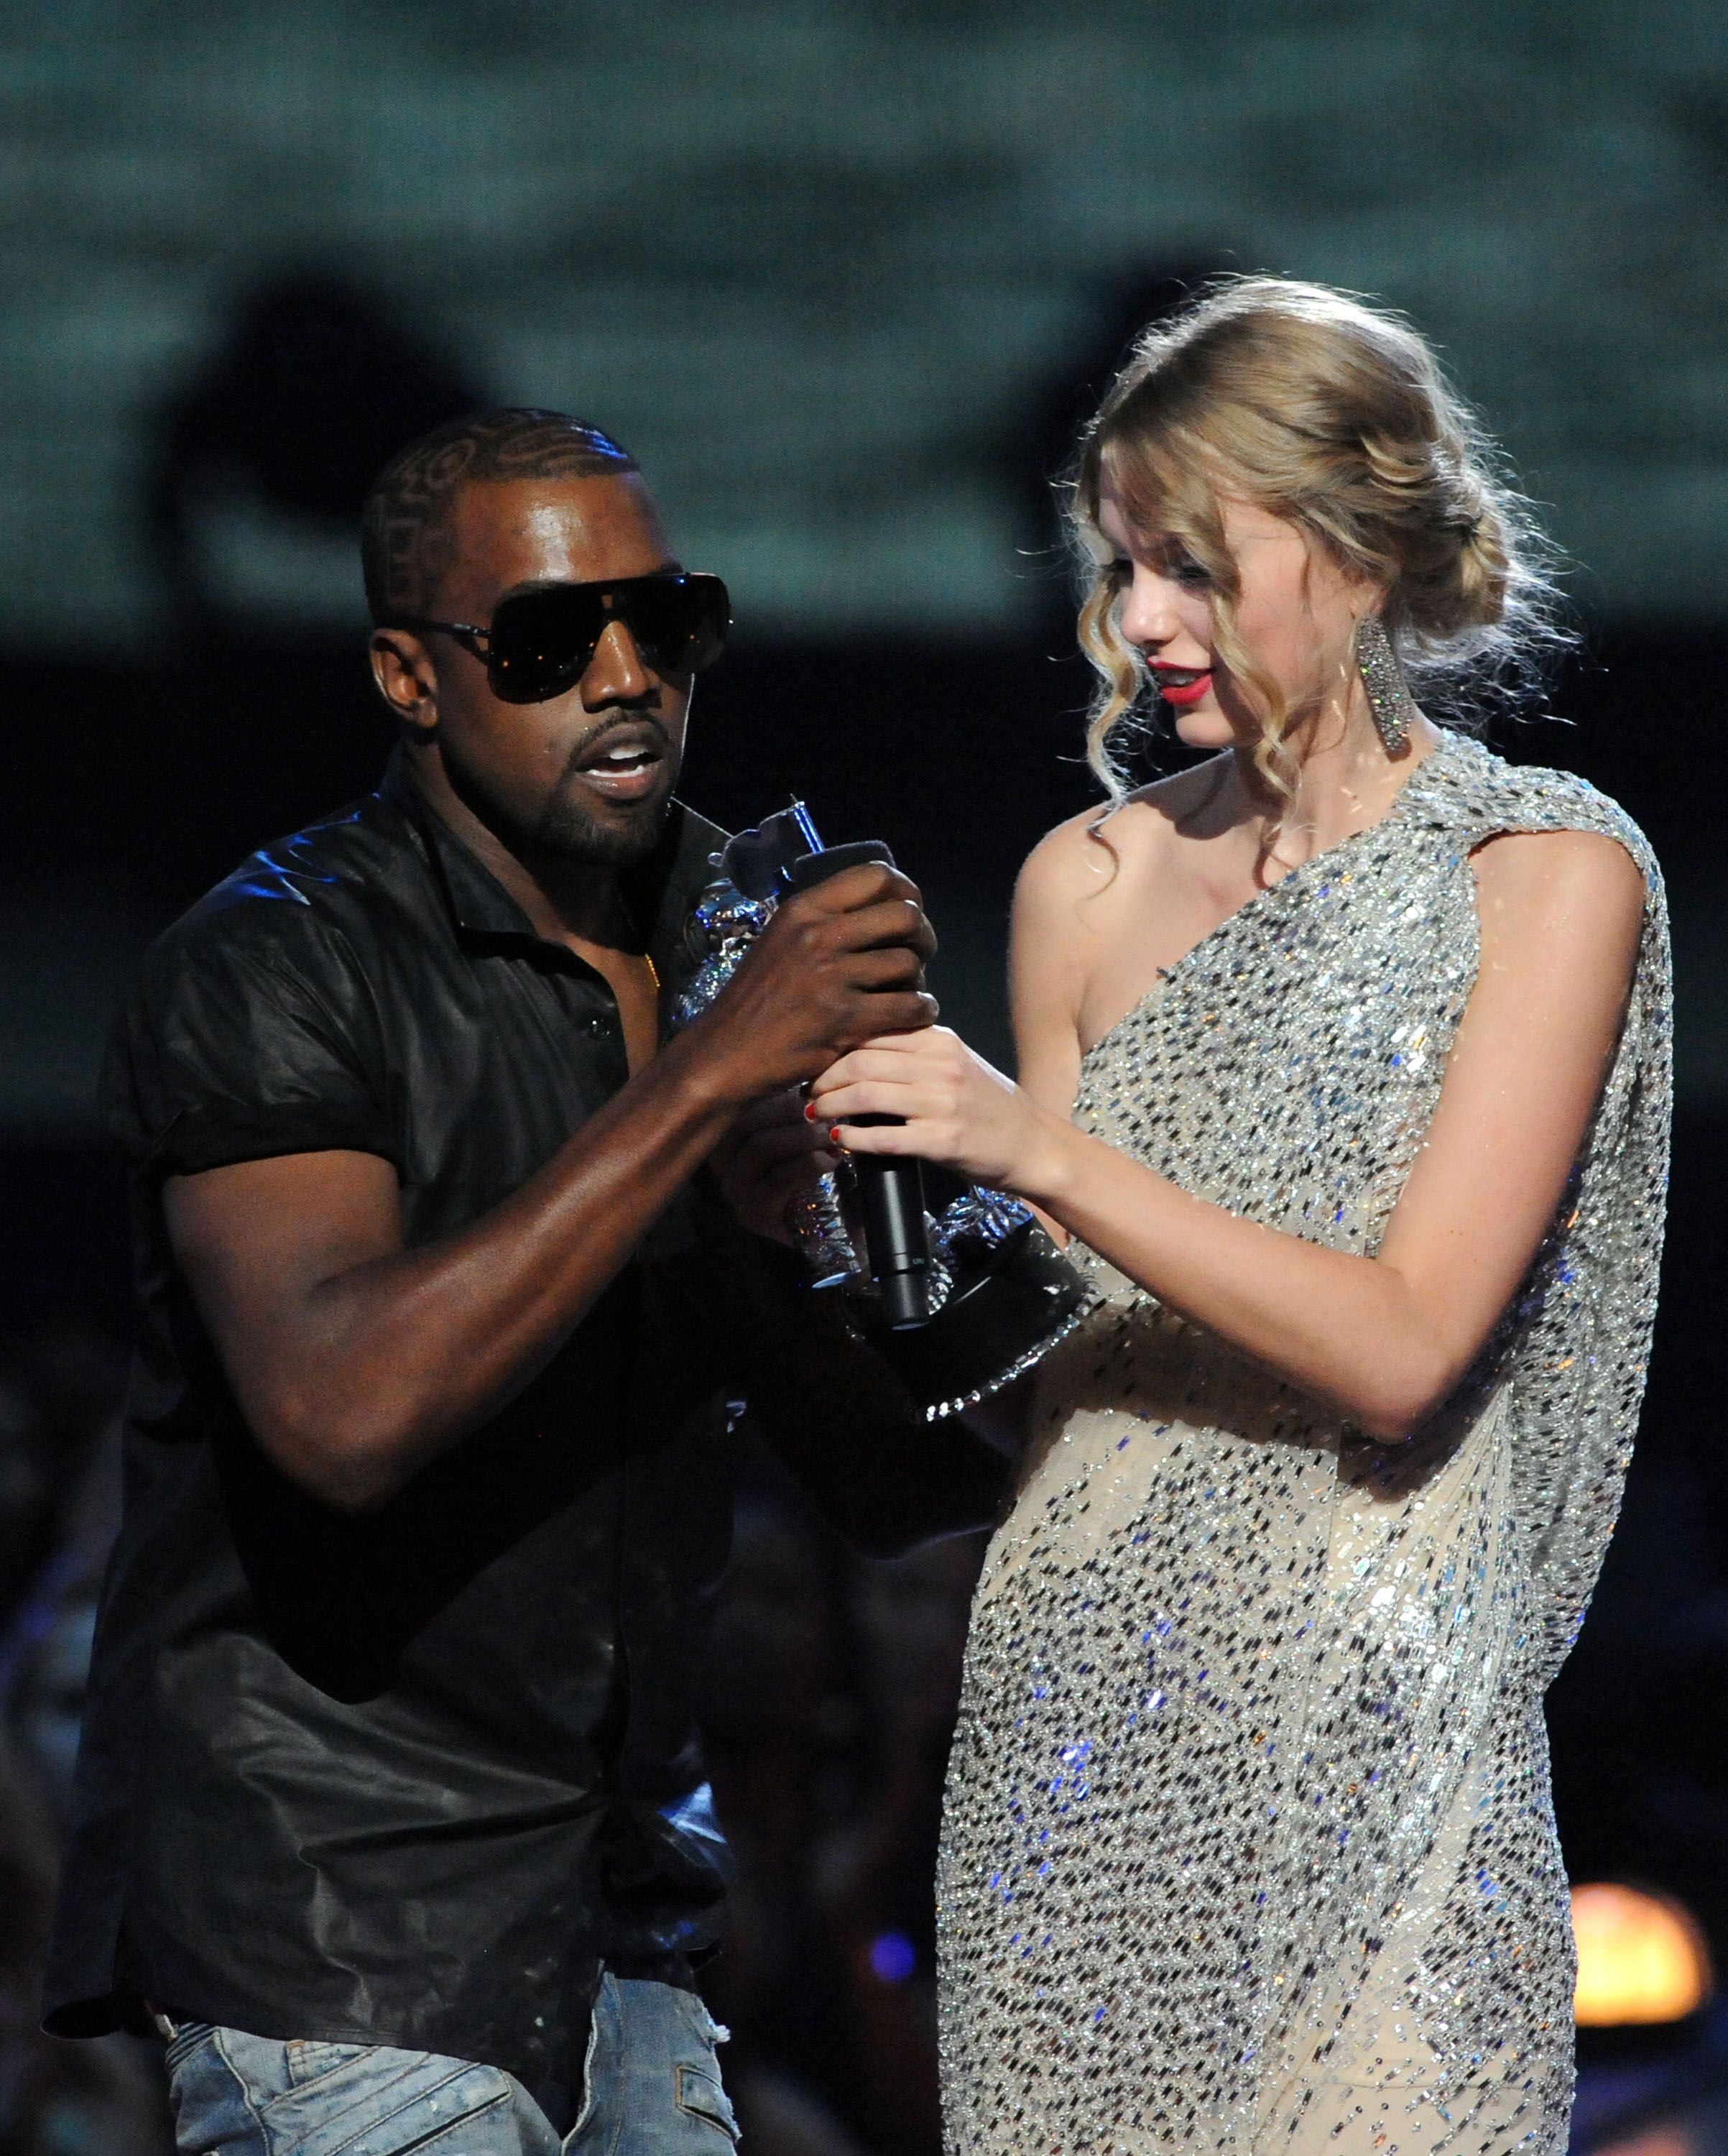 Kanye West dice que Dios lo preparó todo para el discurso de Taylor Swift en los MTV Video Music Awards 2009